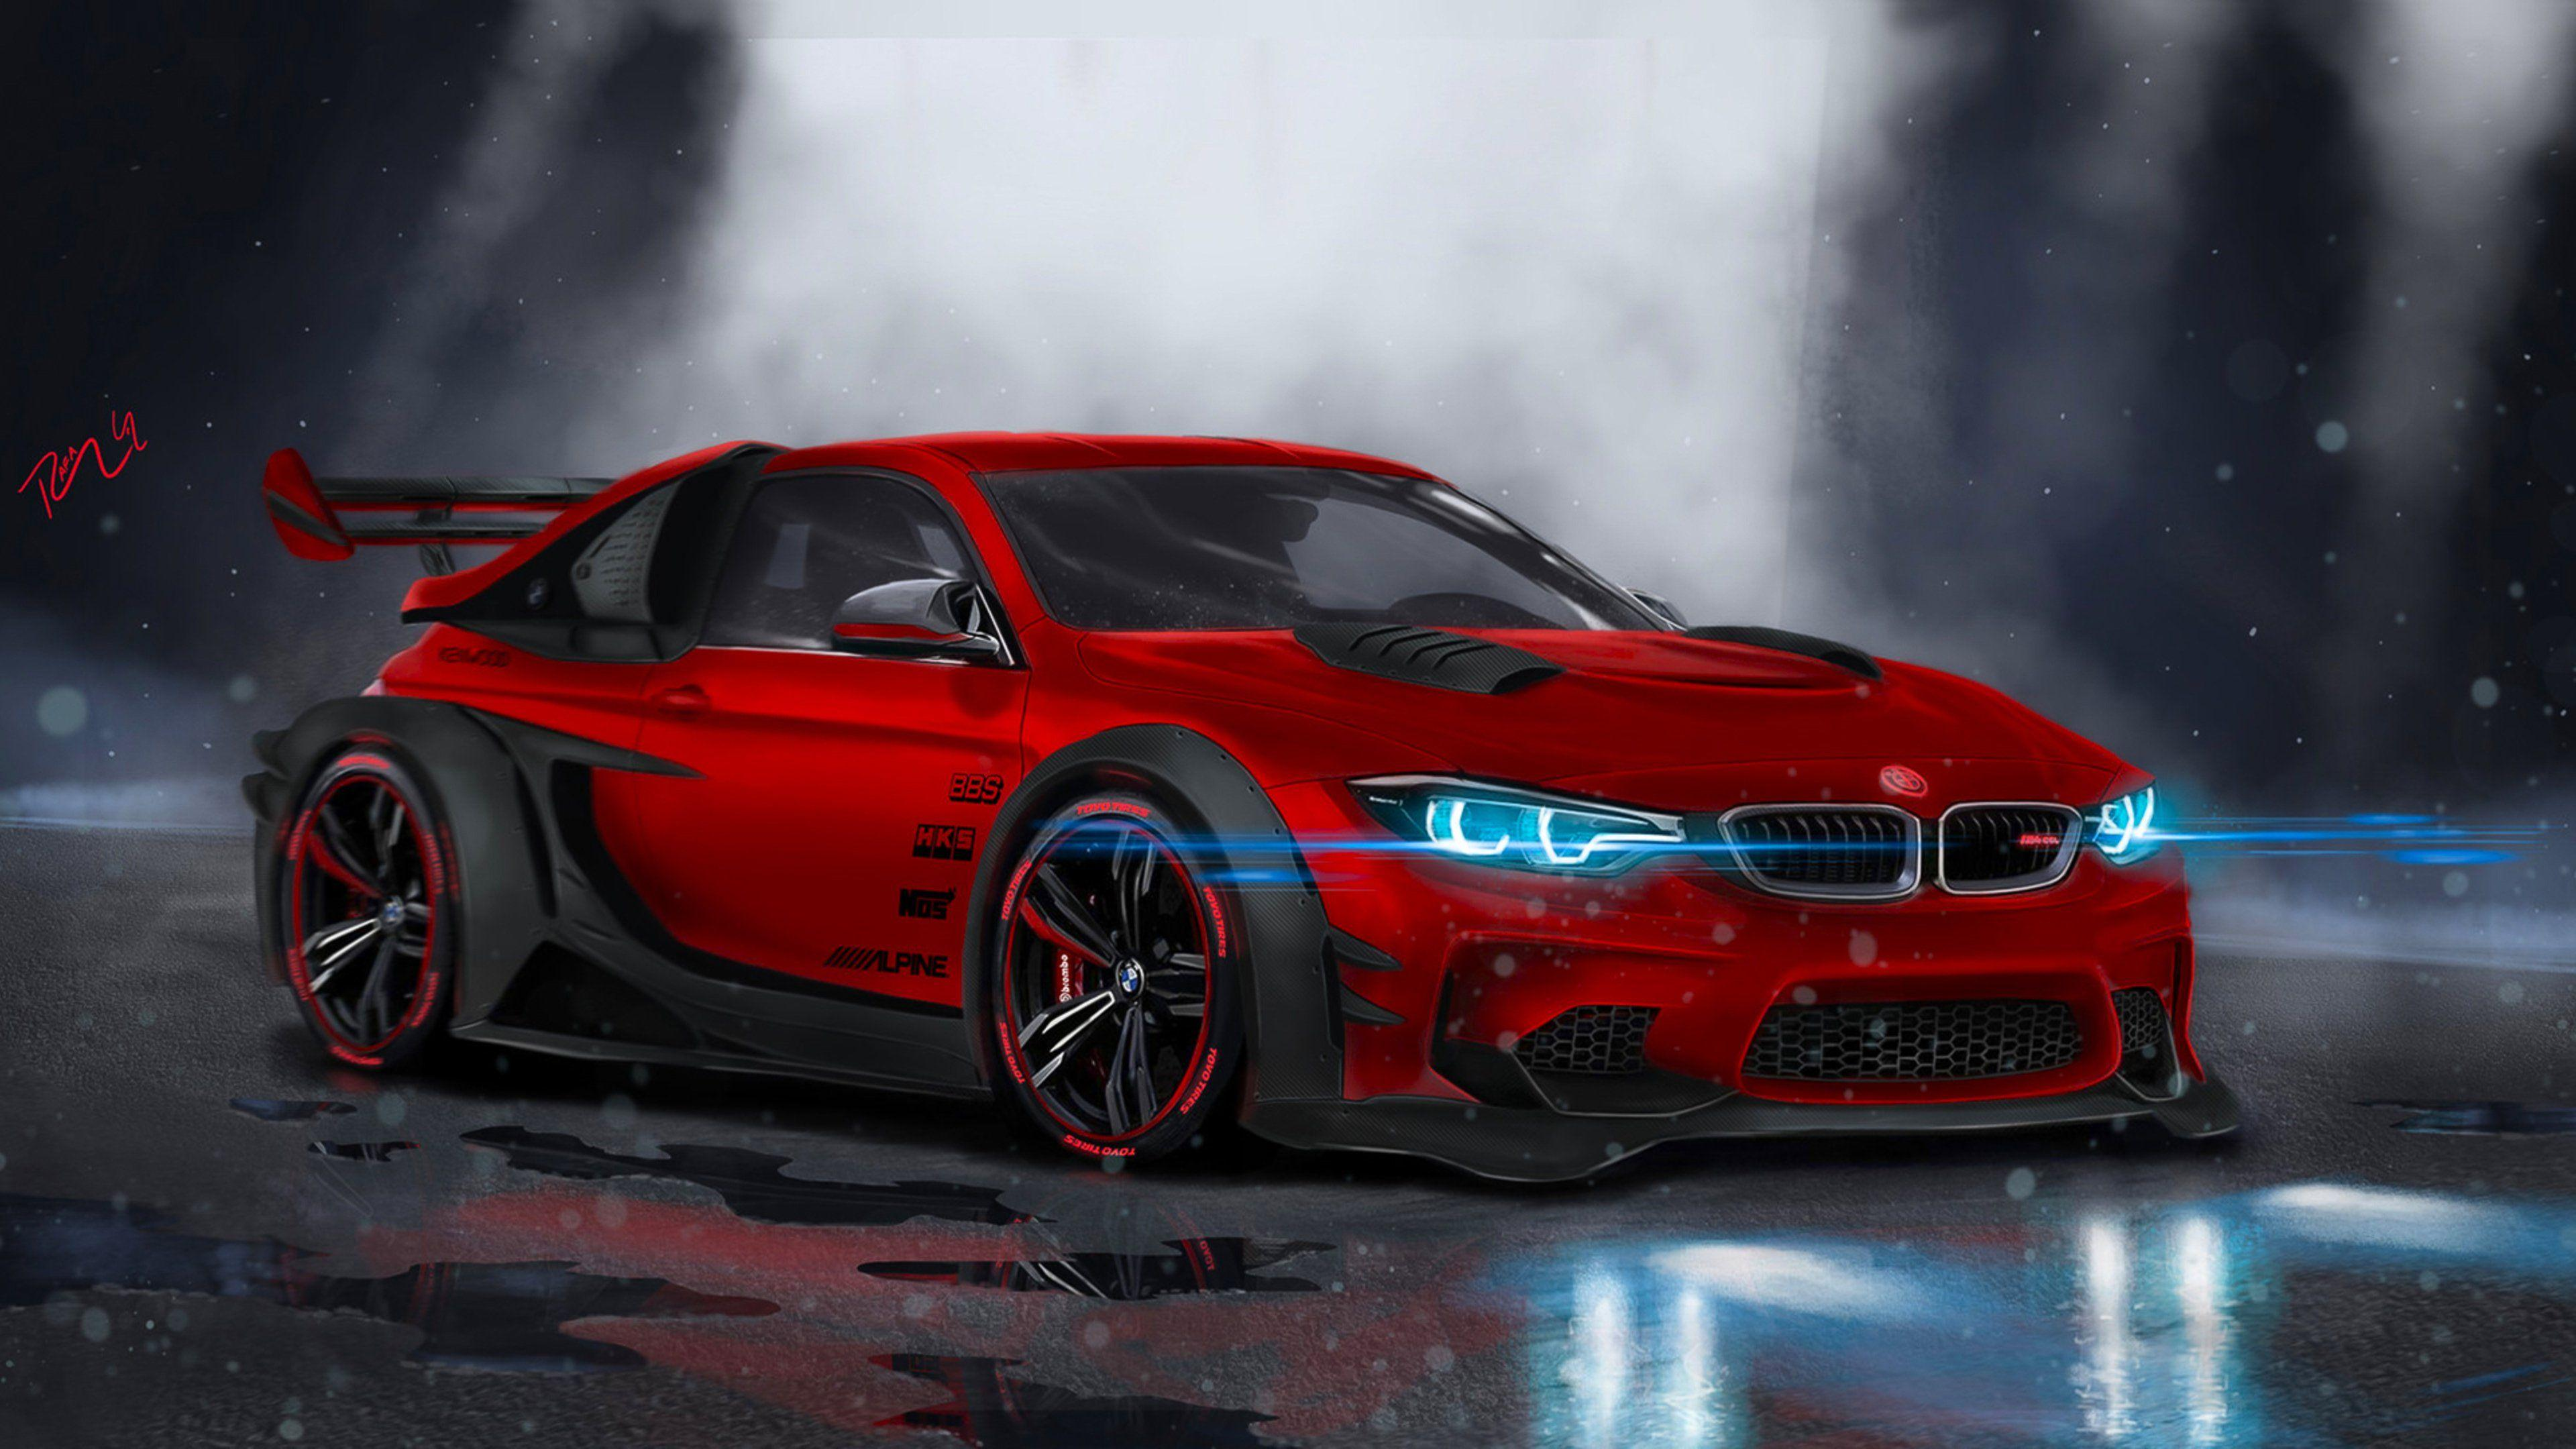 Modified Car Wallpapers Wallpaper Cave